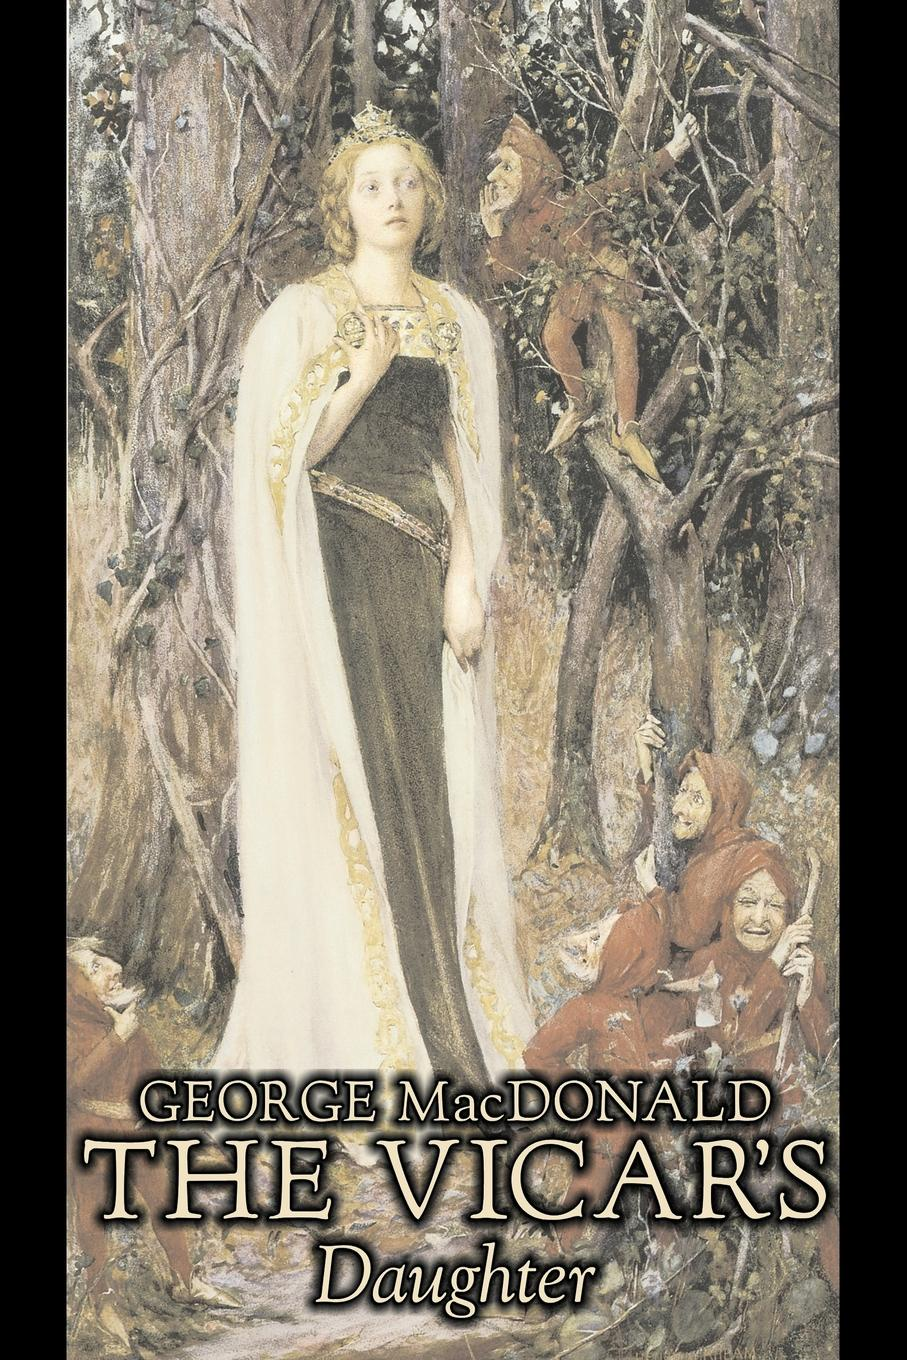 MacDonald George The Vicar's Daughter by George Macdonald, Fiction, Classics, Action & Adventure macdonald george st george and st michael by george macdonald fiction classics action